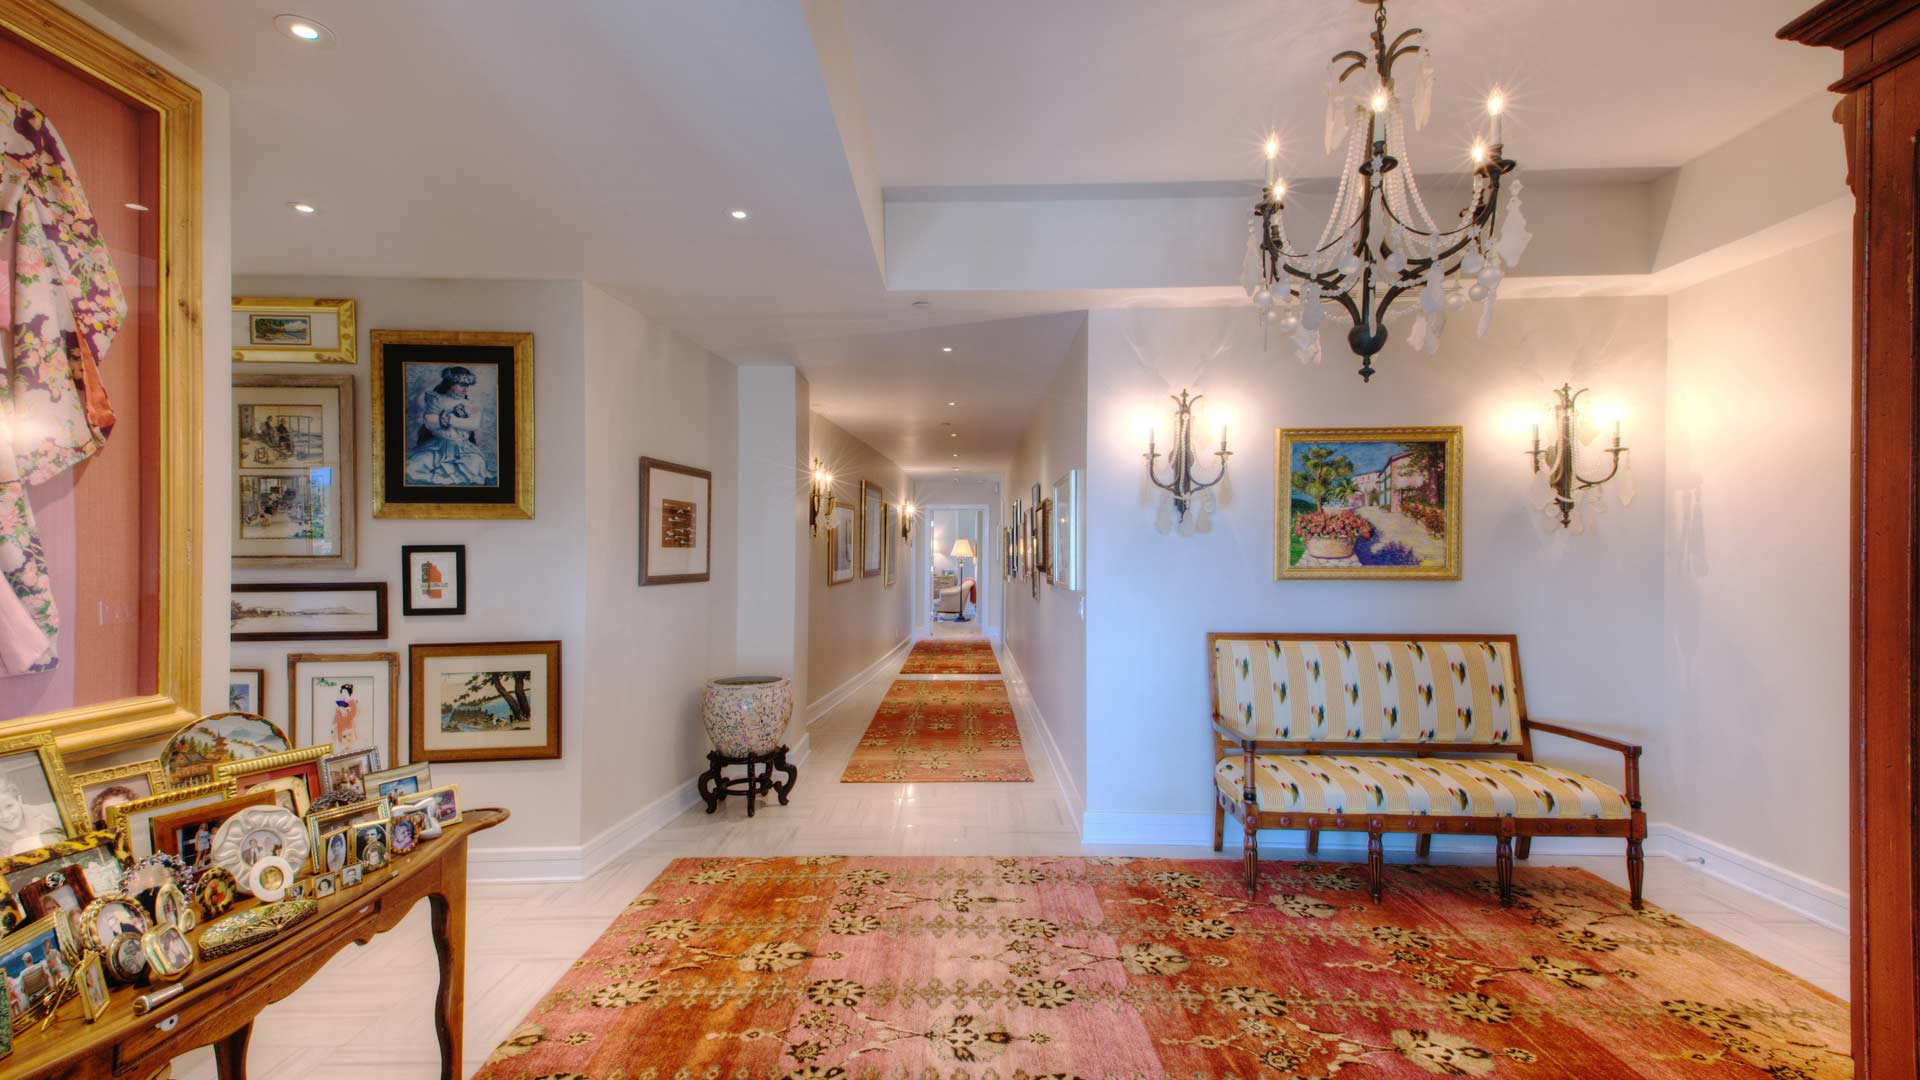 Entry Hall - Eclectic Modern Interior - Indianapolis, IN